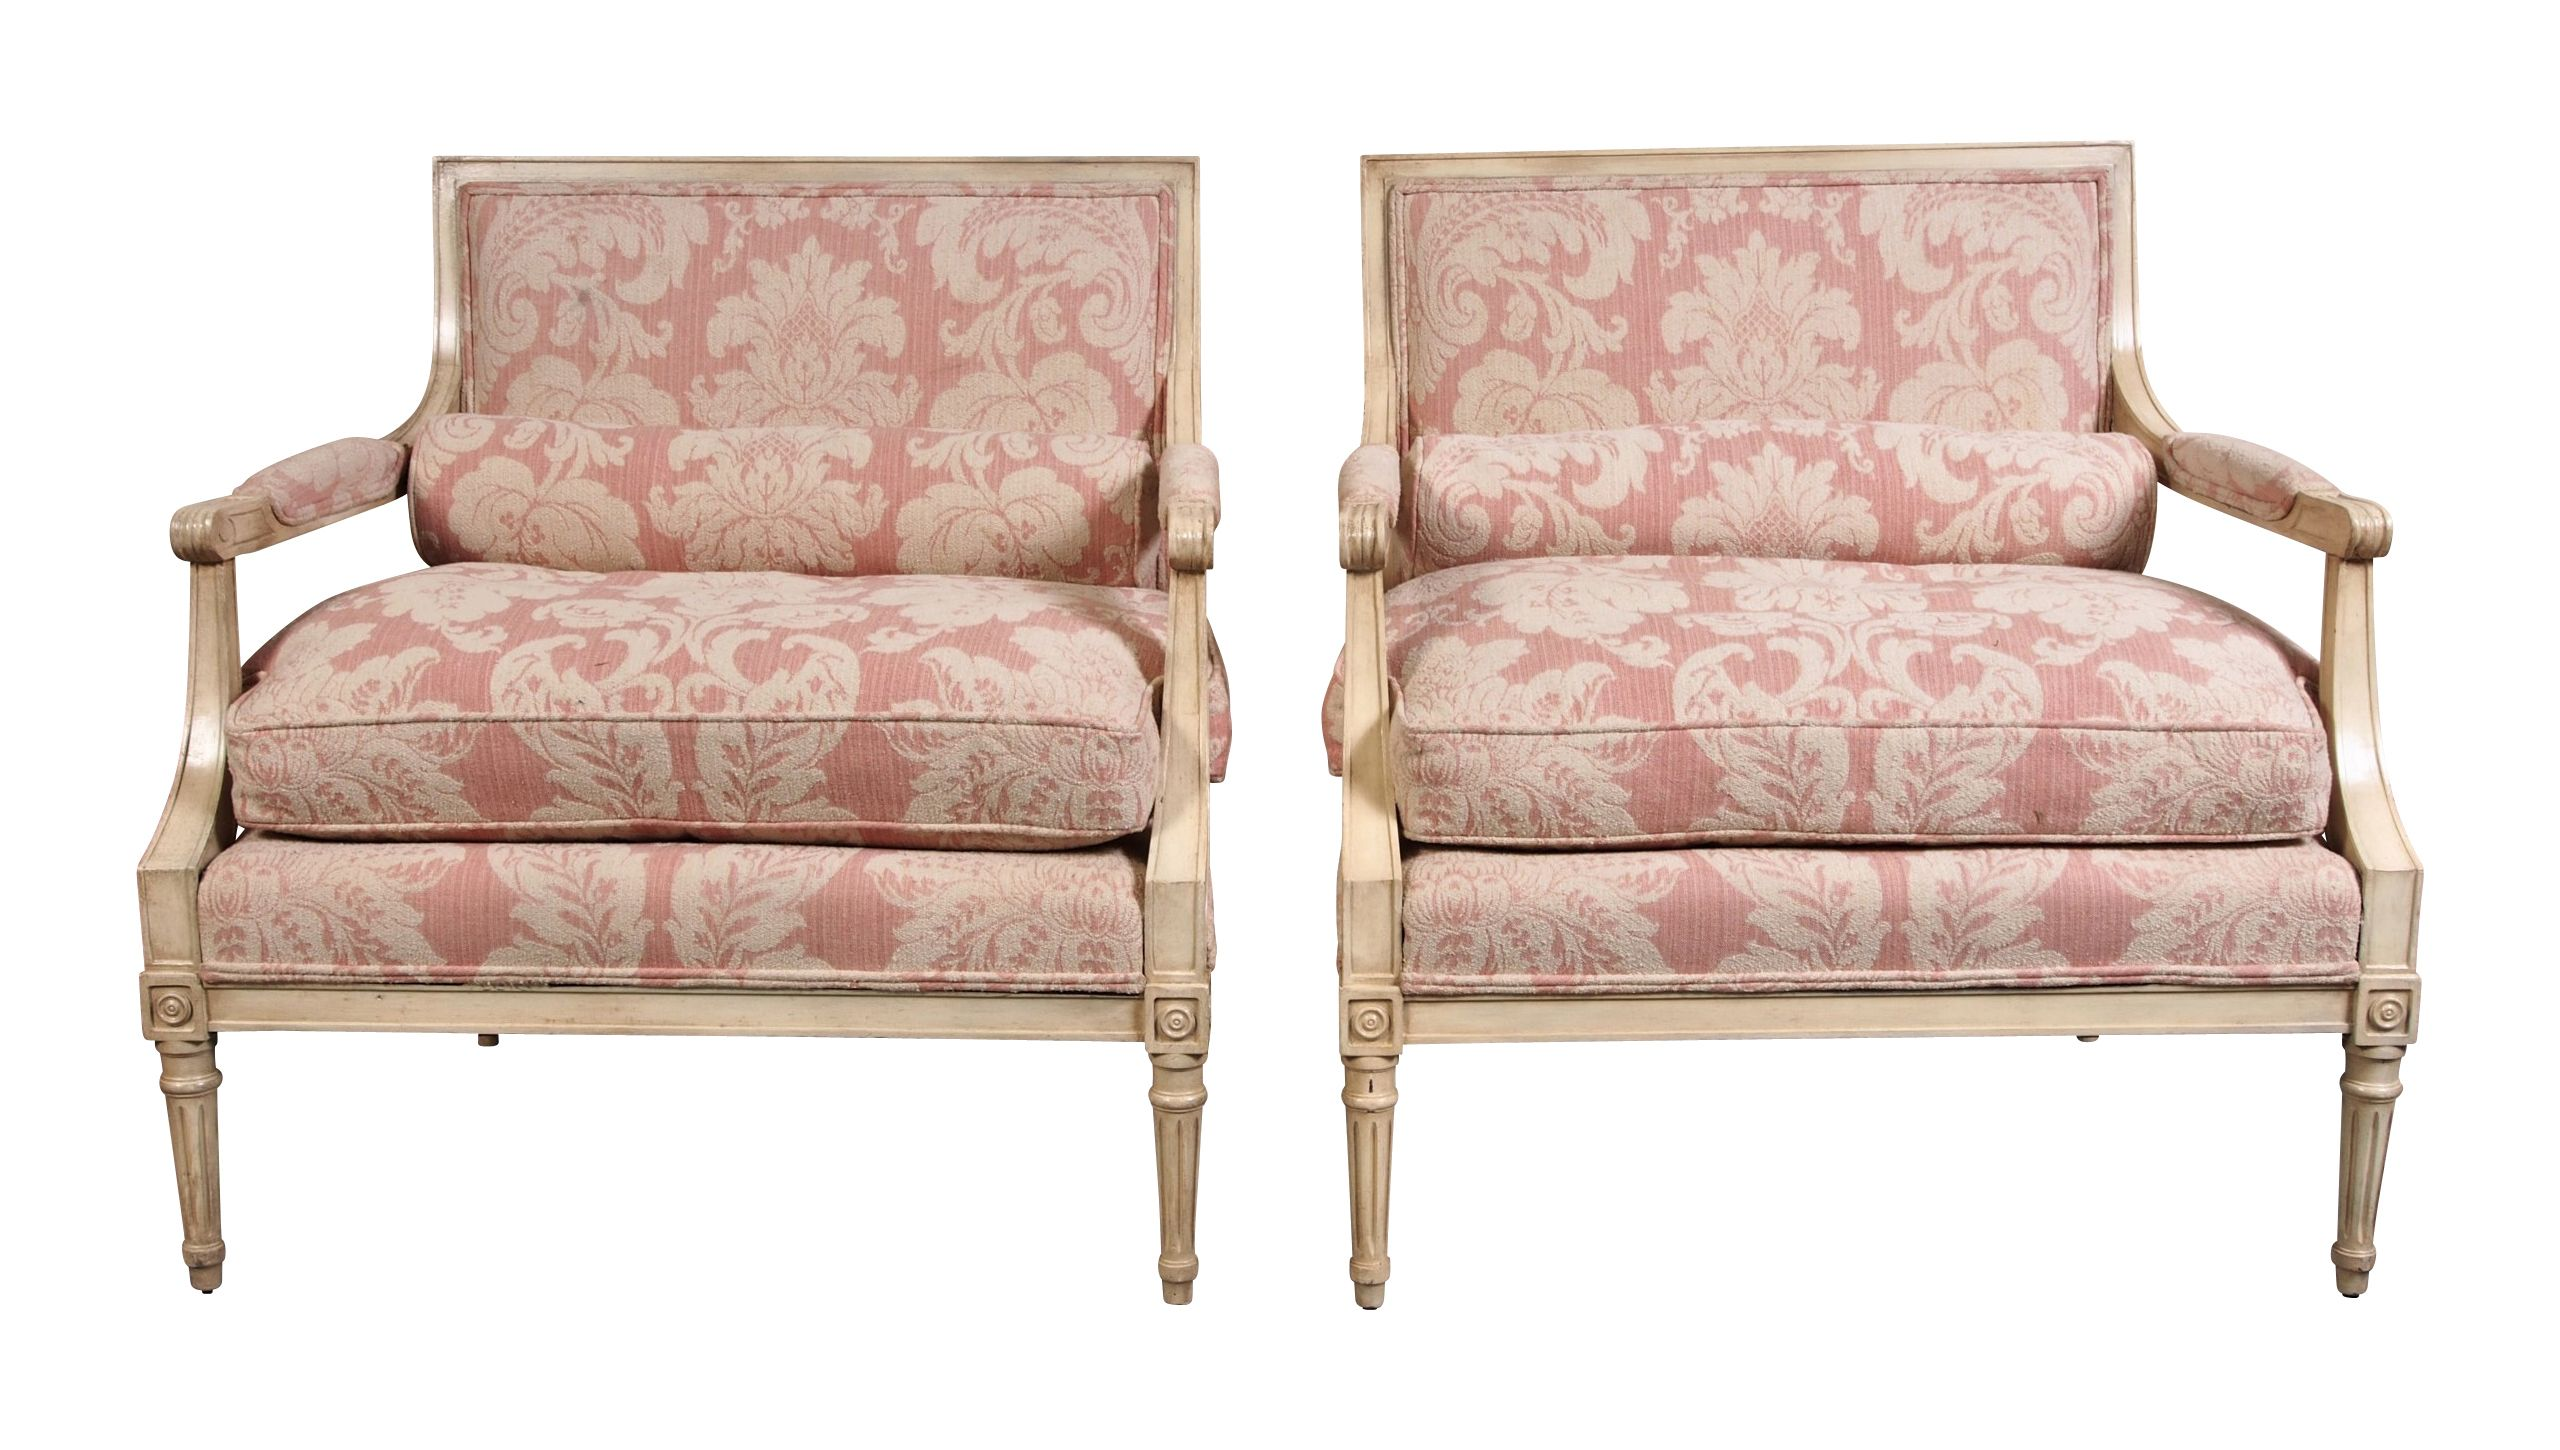 Well made and very fortable French style chairs with Pale